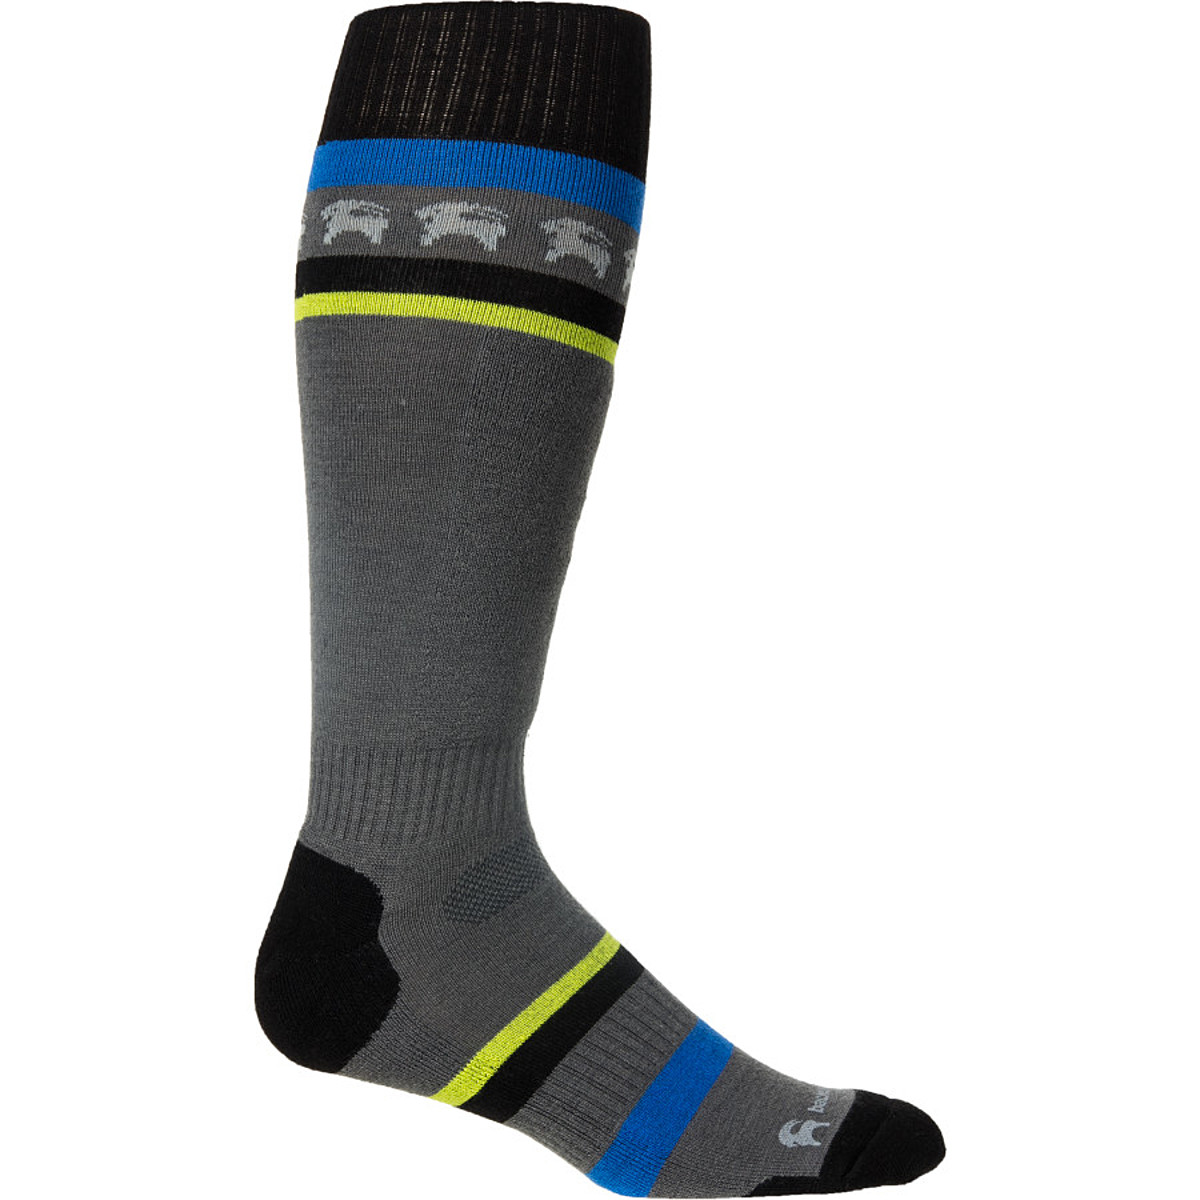 Backcountry.com Merino Tec Ski Sock